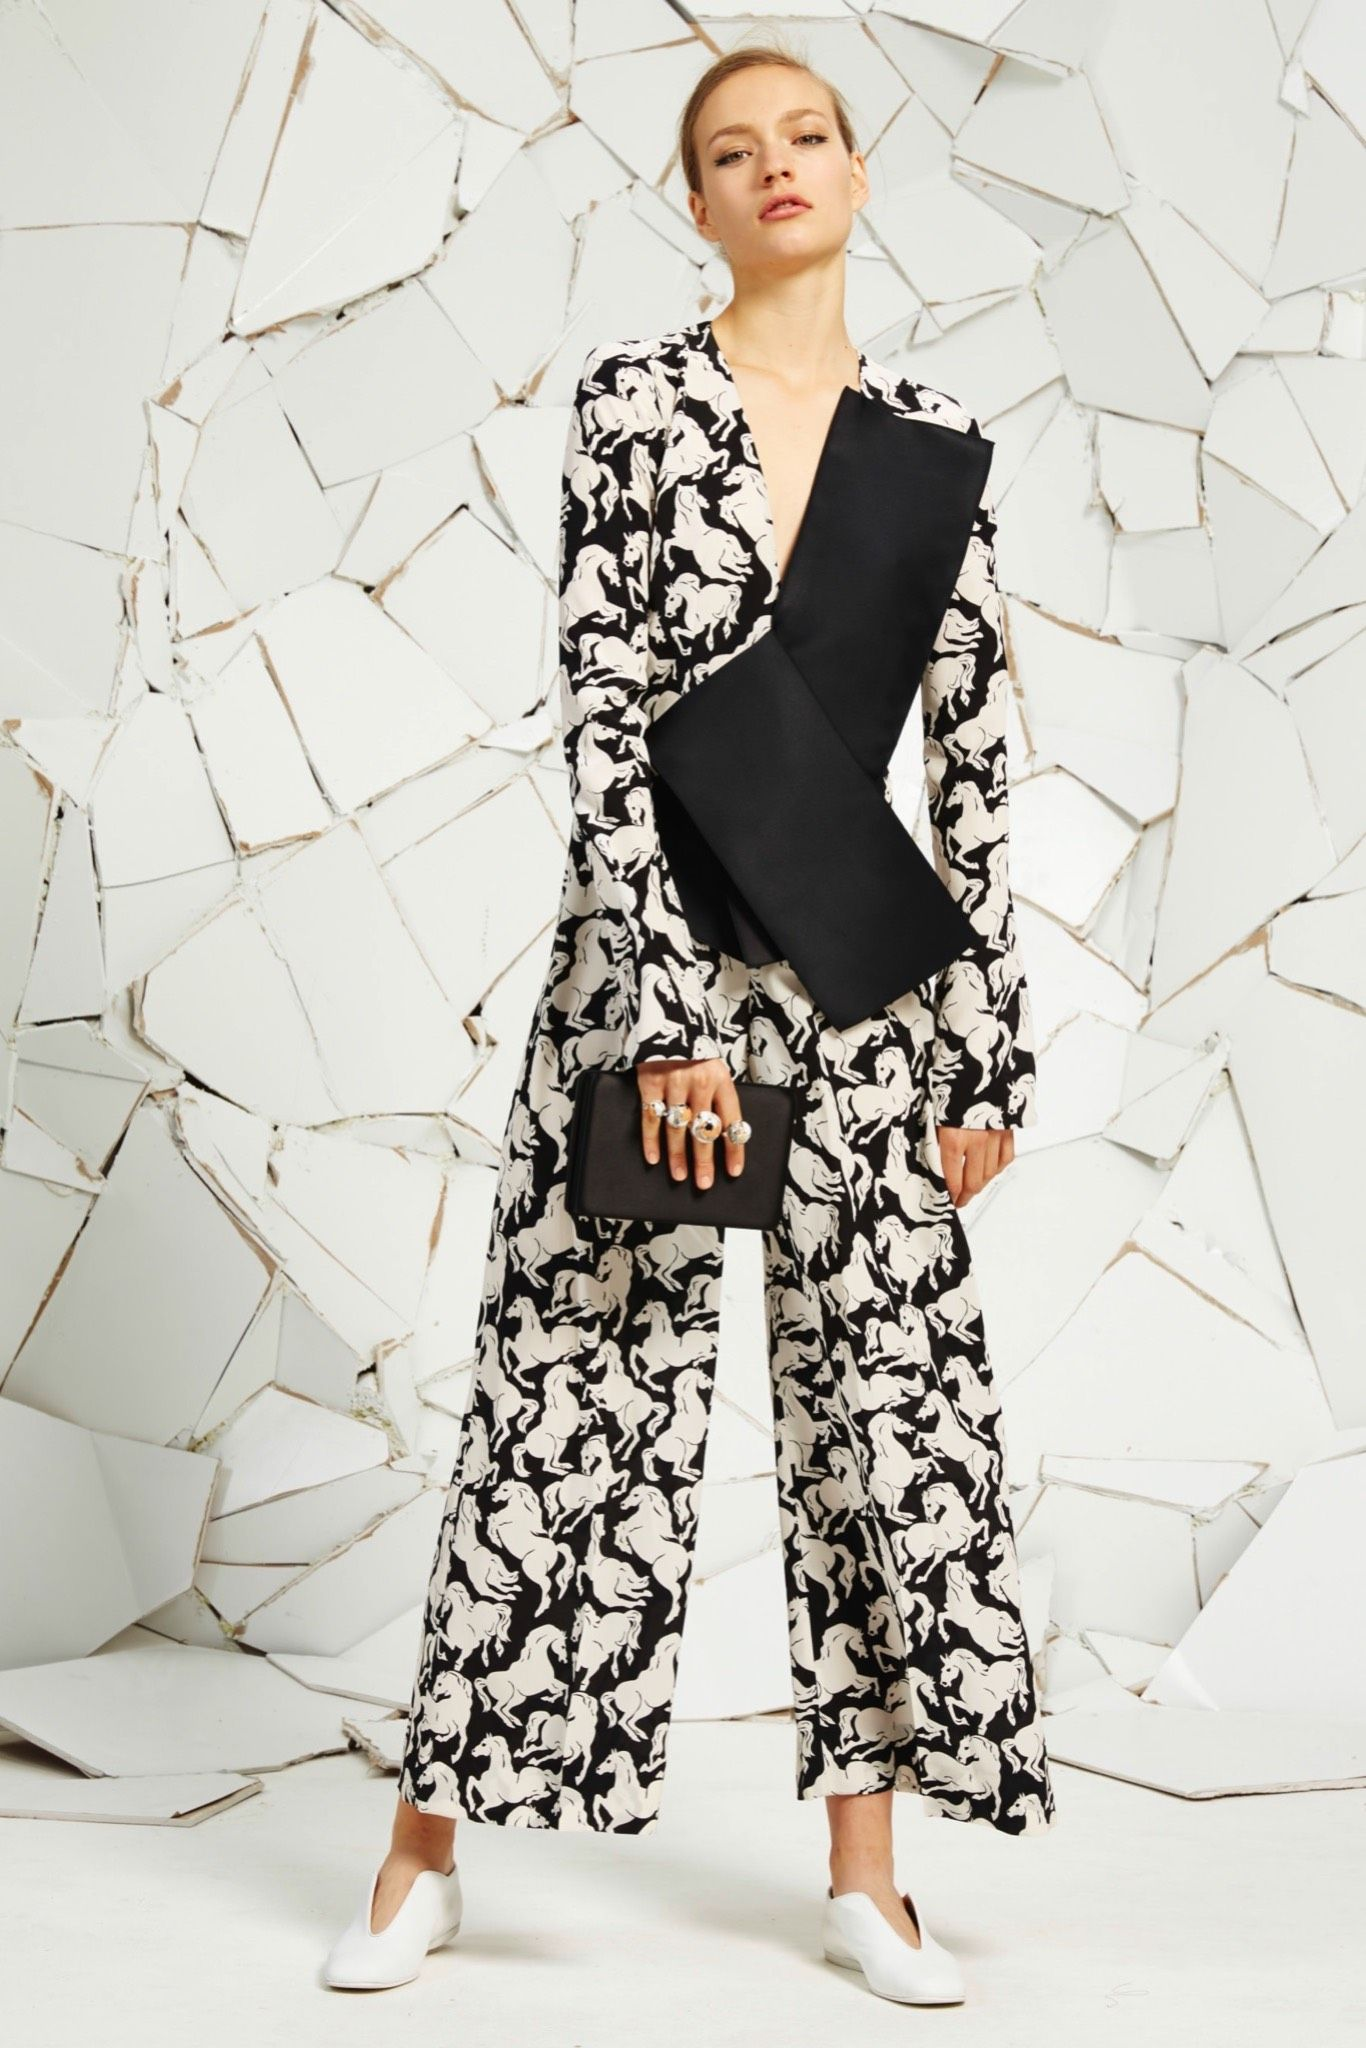 Stella McCartney Resort 2016 - Collection - Gallery - Style.com   http://www.style.com/slideshows/fashion-shows/resort-2016/stella-mccartney/collection/24